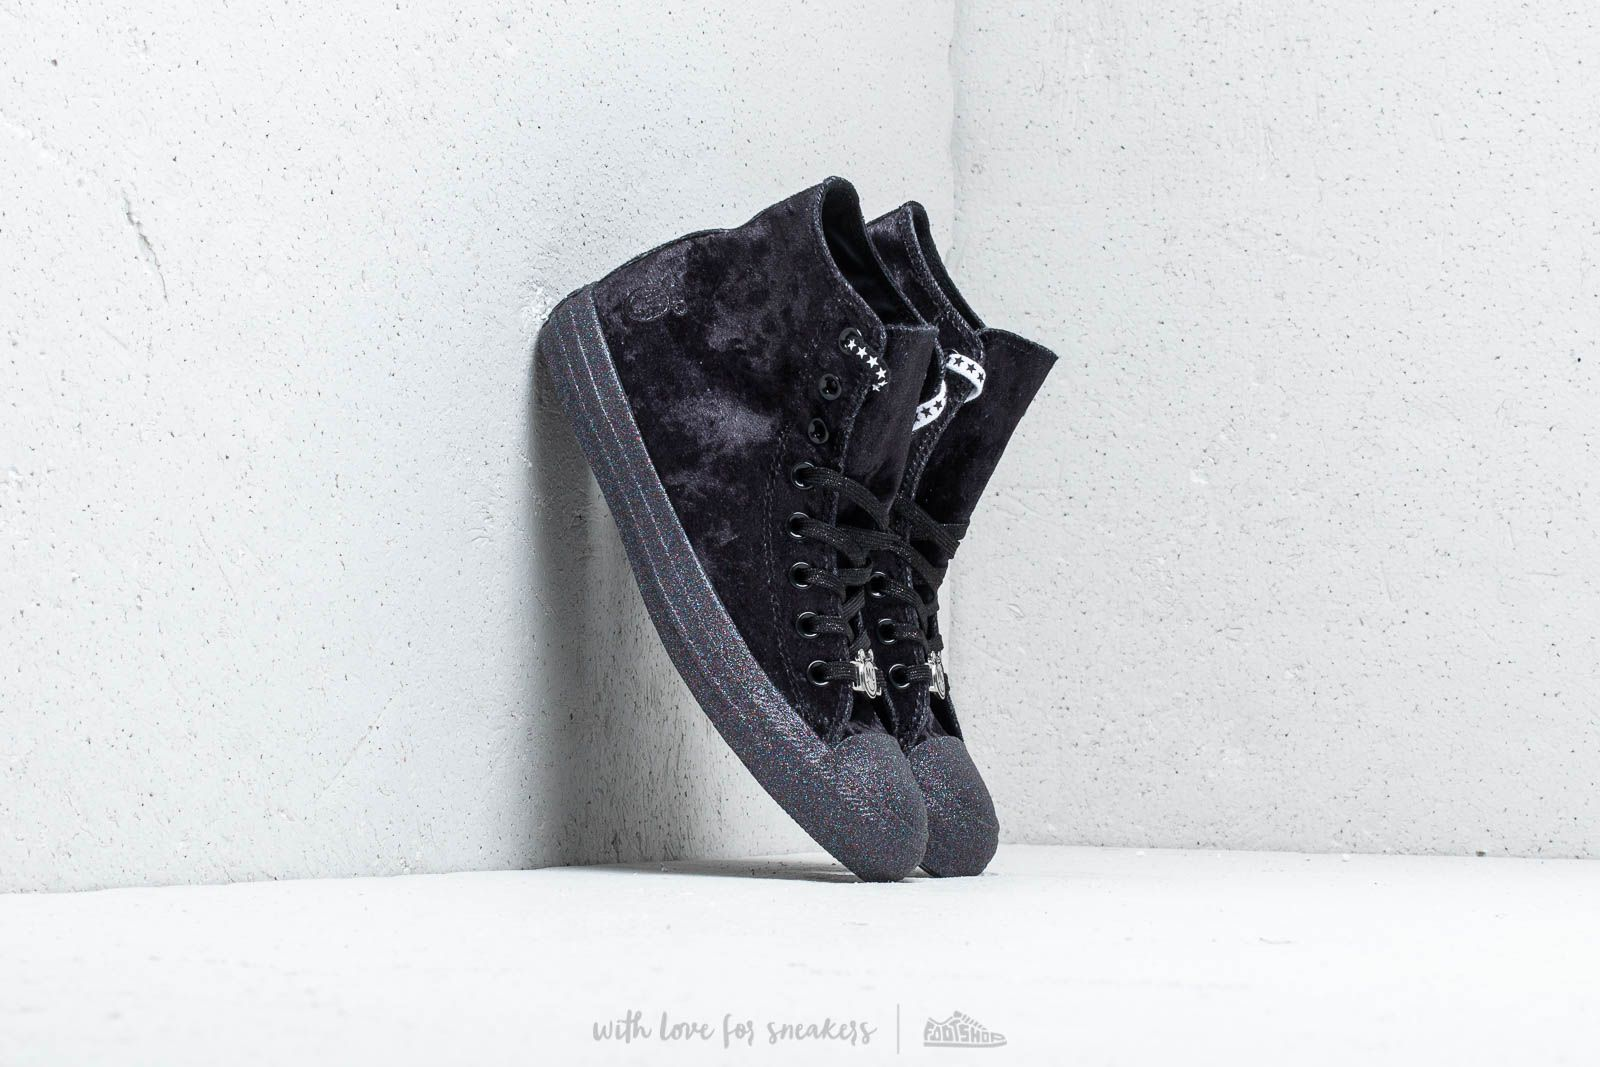 best sneakers a1f08 a6148 Converse x Miley Cyrus Chuck Taylor All Star Hi Black  Silver  White at a